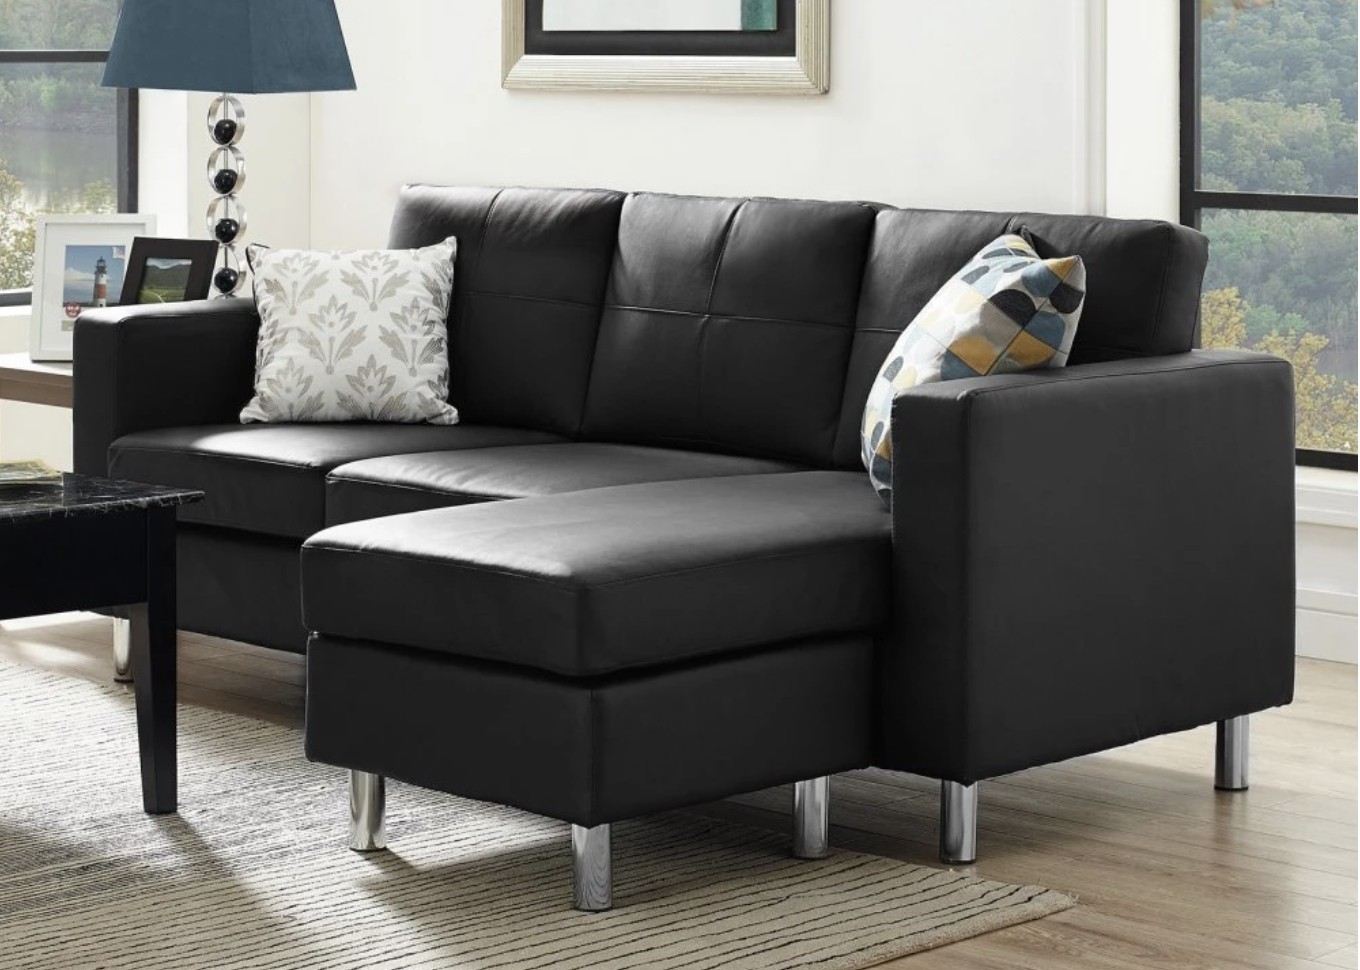 Newest 75 Modern Sectional Sofas For Small Spaces (2018) Inside 80X80 Sectional Sofas (View 12 of 15)